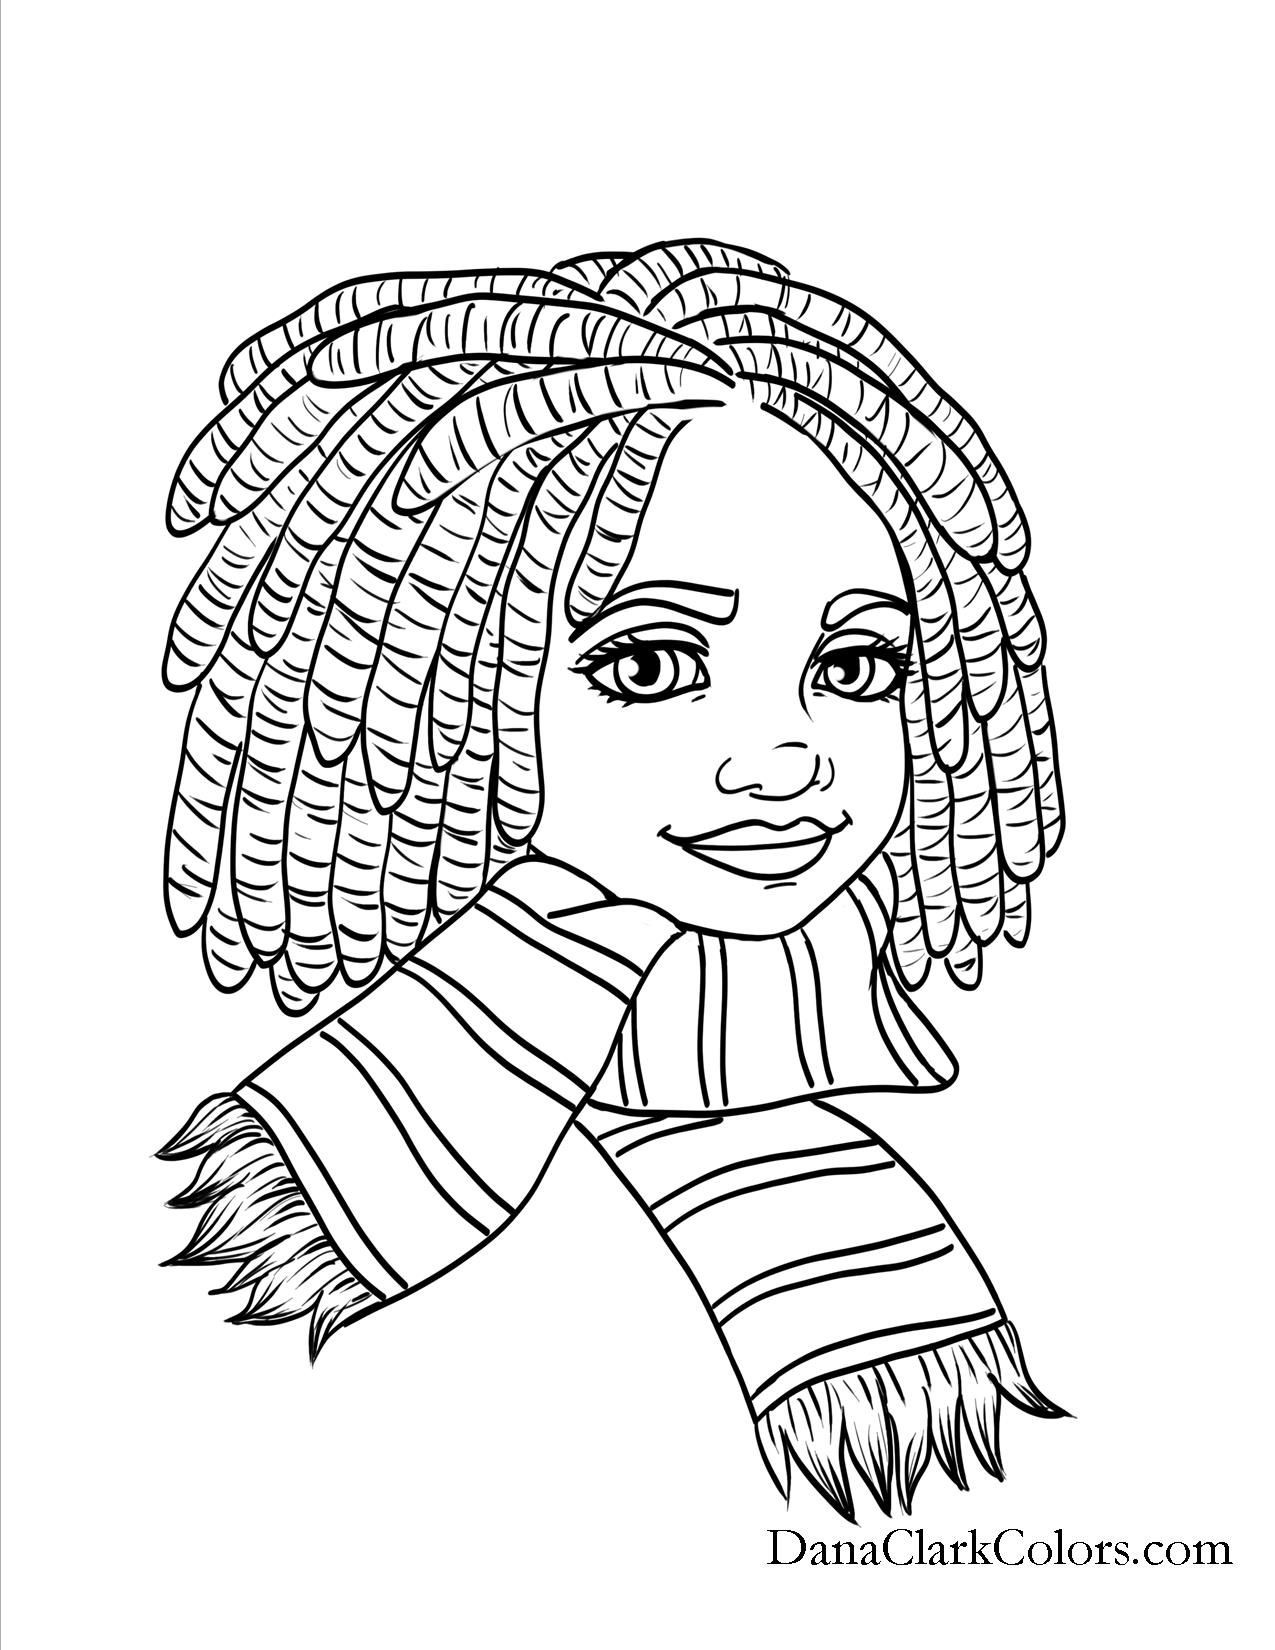 1275x1650 African American Coloring Pages Fresh Lego Nexo Knights Coloring